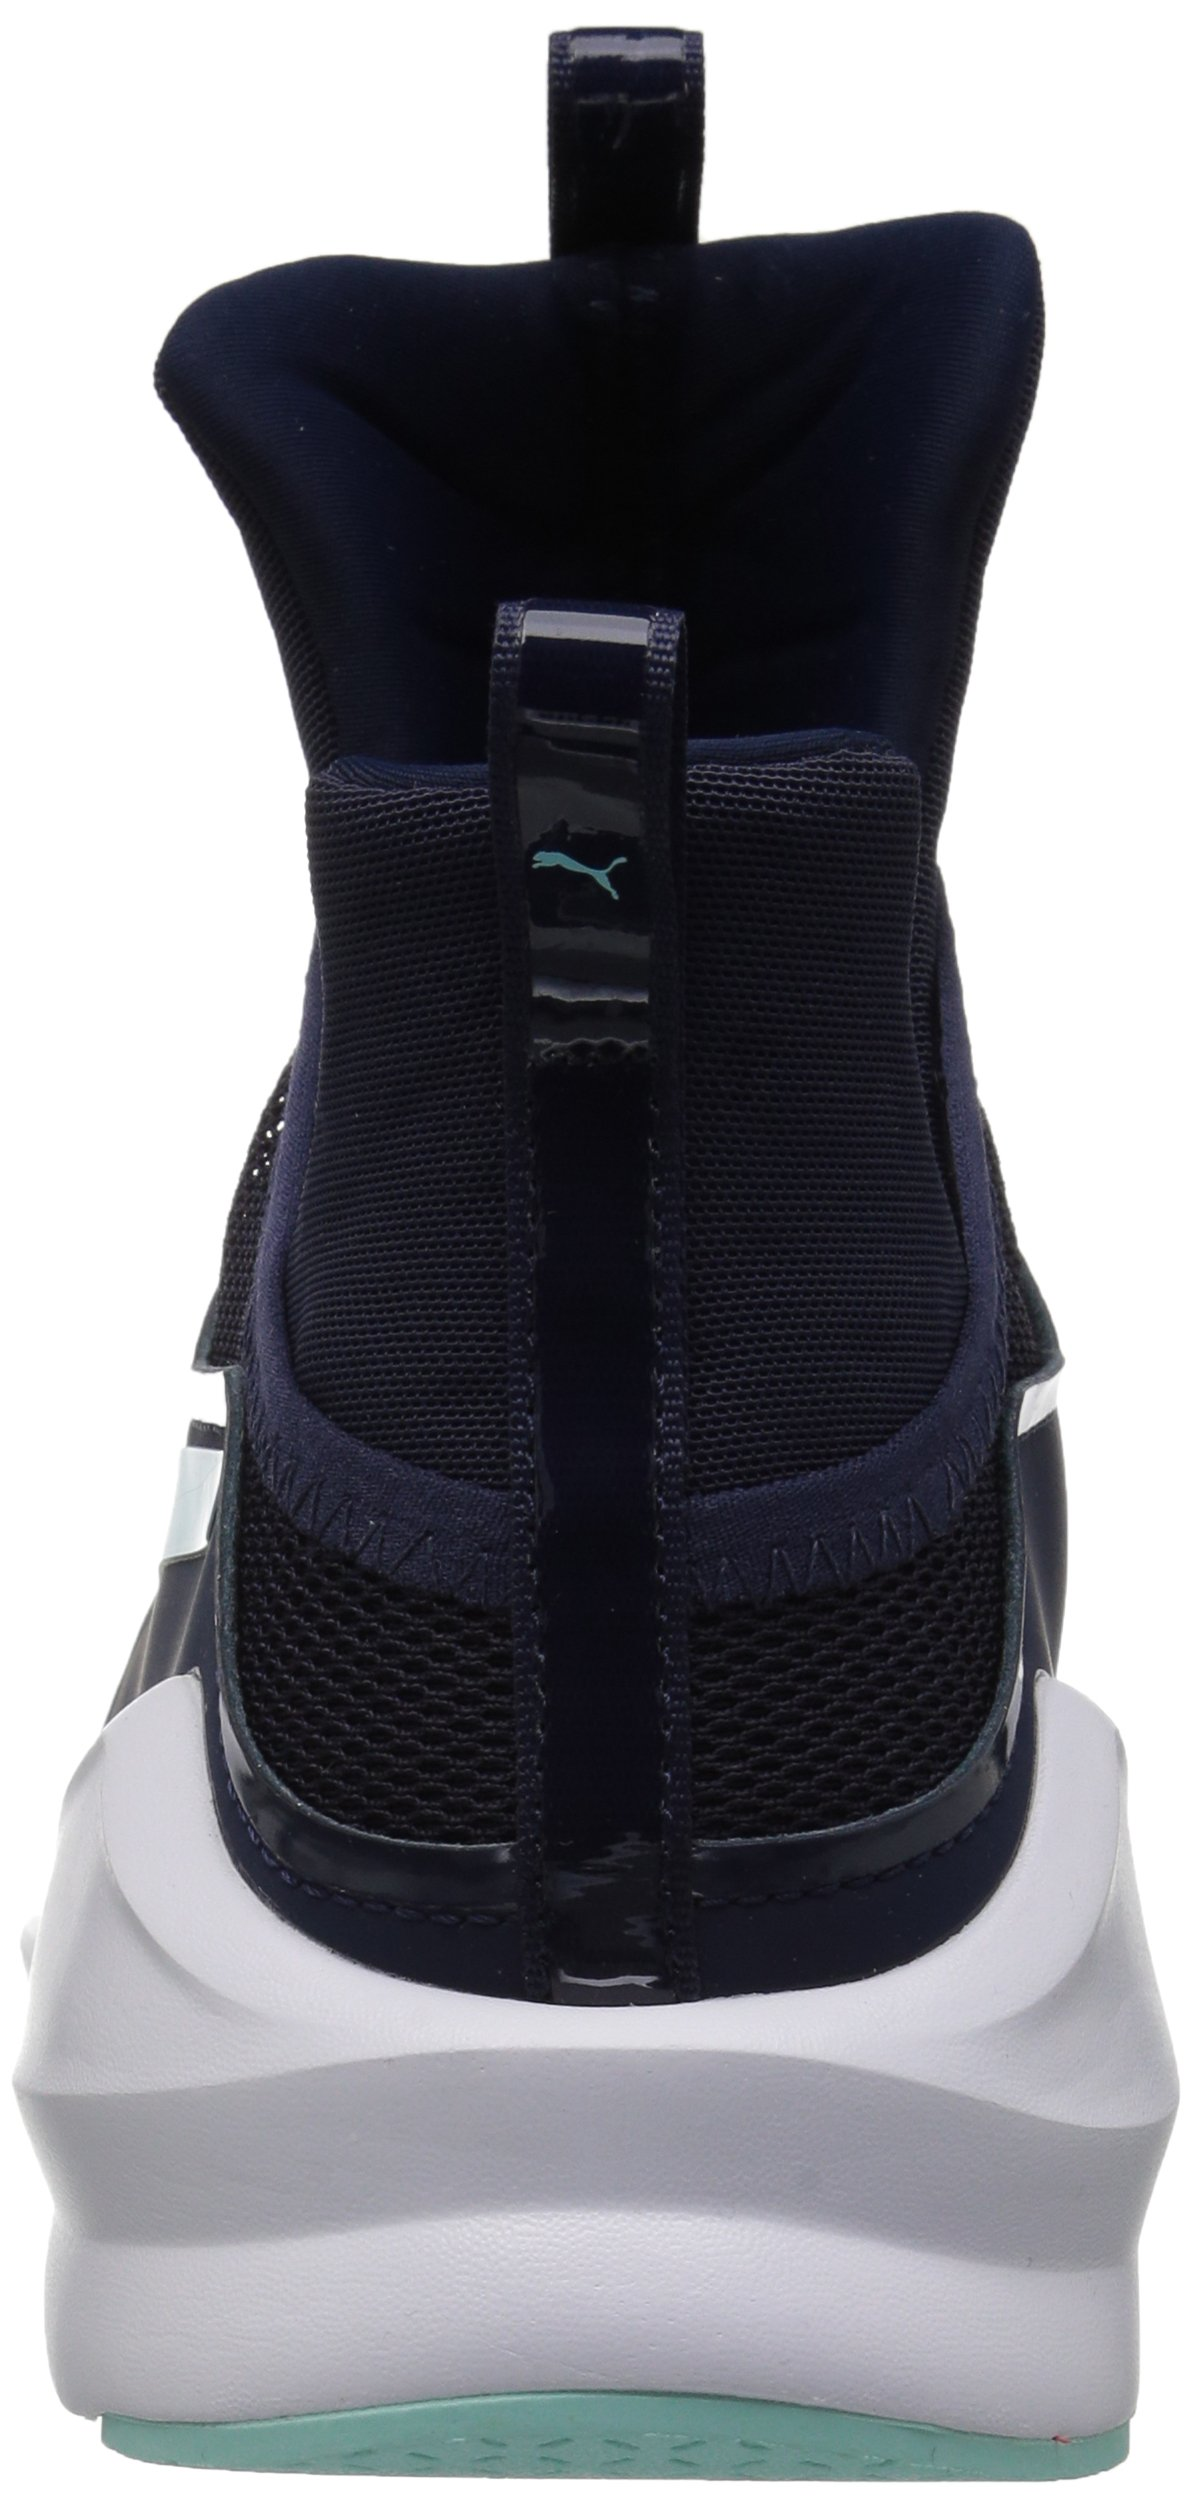 PUMA Women's Fierce Core Sneaker, Peacoat-Island Paradise, 9 M US by PUMA (Image #2)